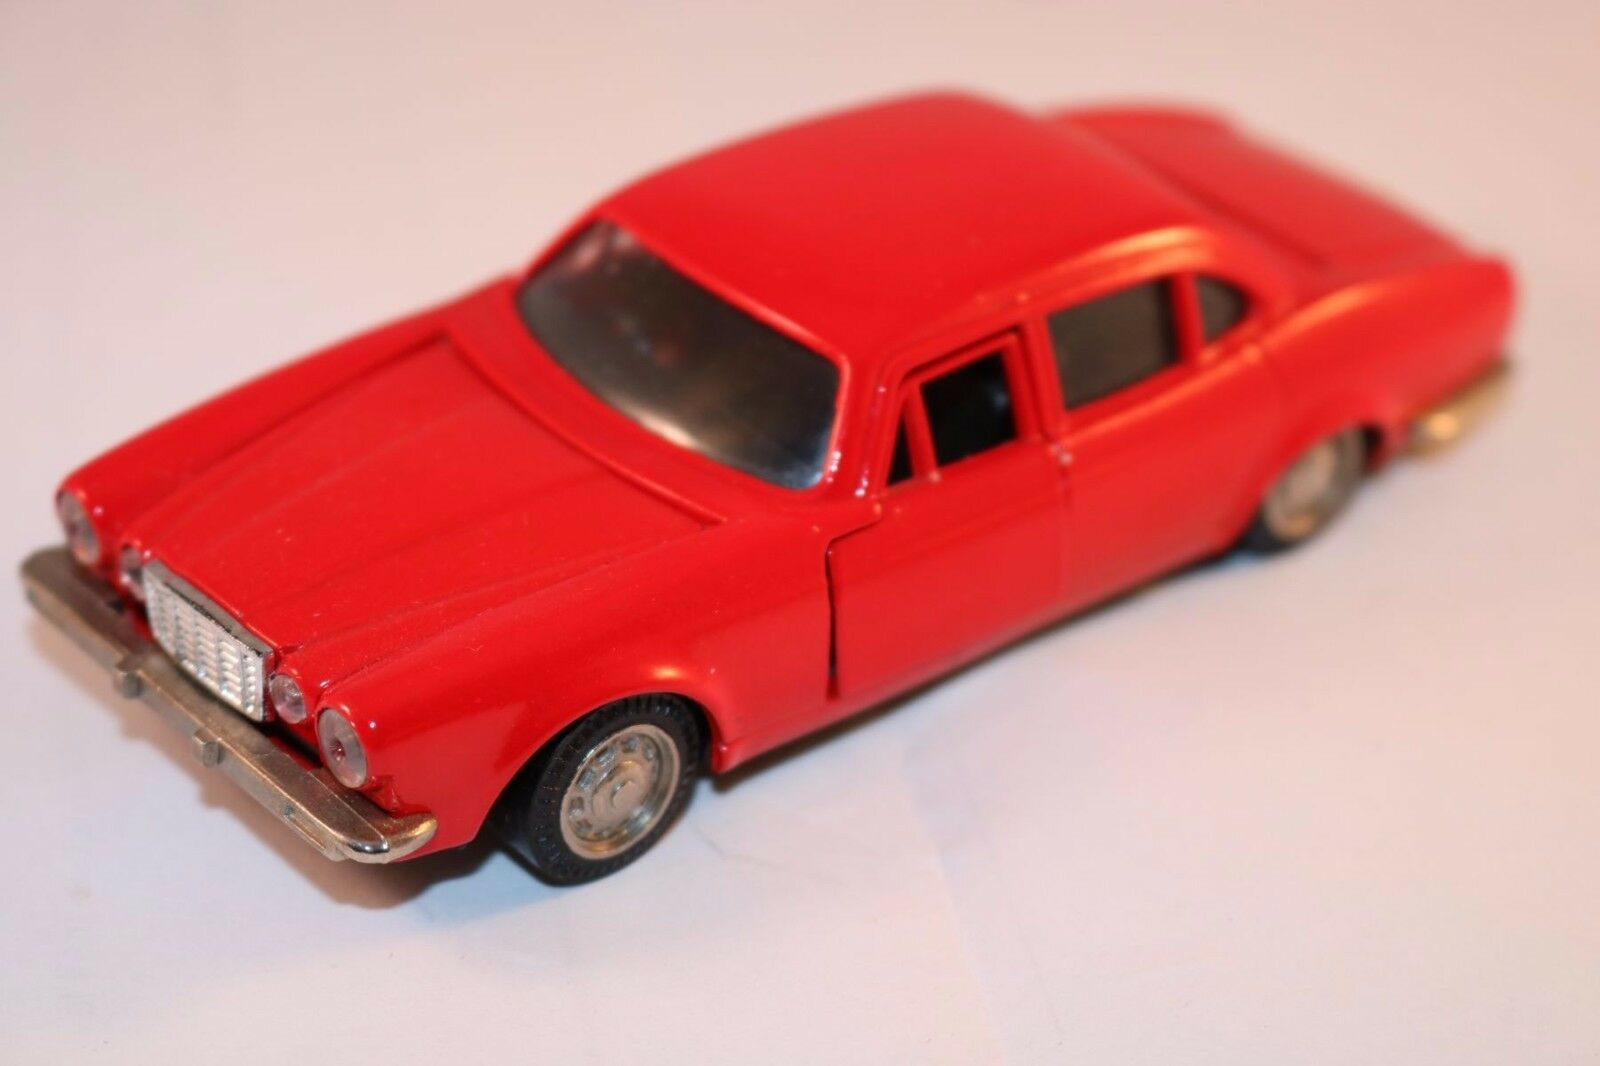 K.K. Sakura No 6 Jagura XJ Jaguar rot 99% mint original very scarce model